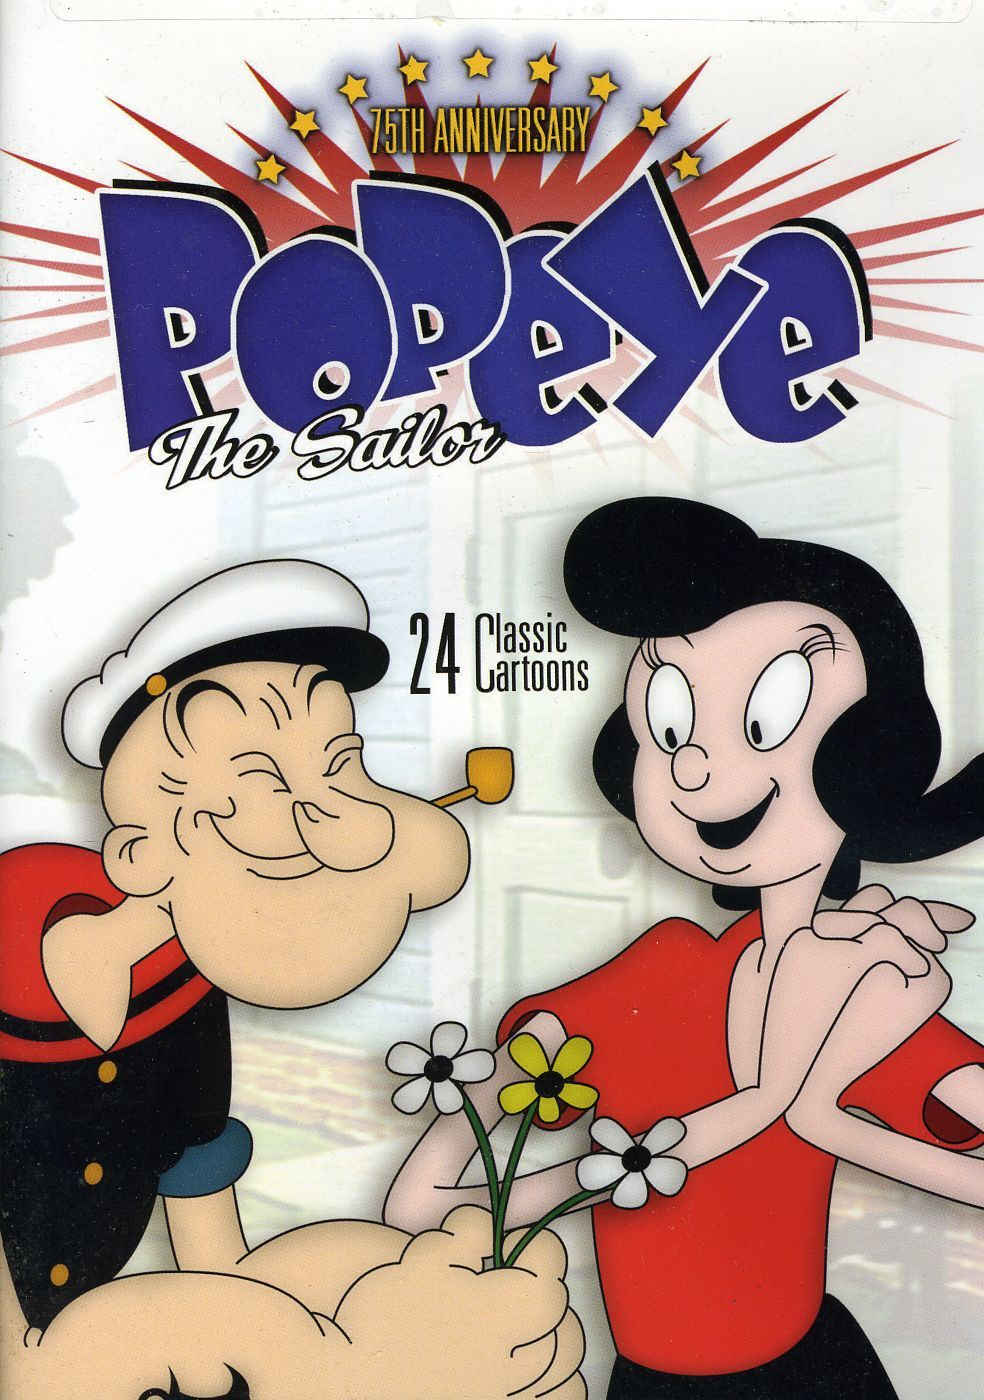 Pics Popeye The Sailor Free For Screensaver Image Wallpaper